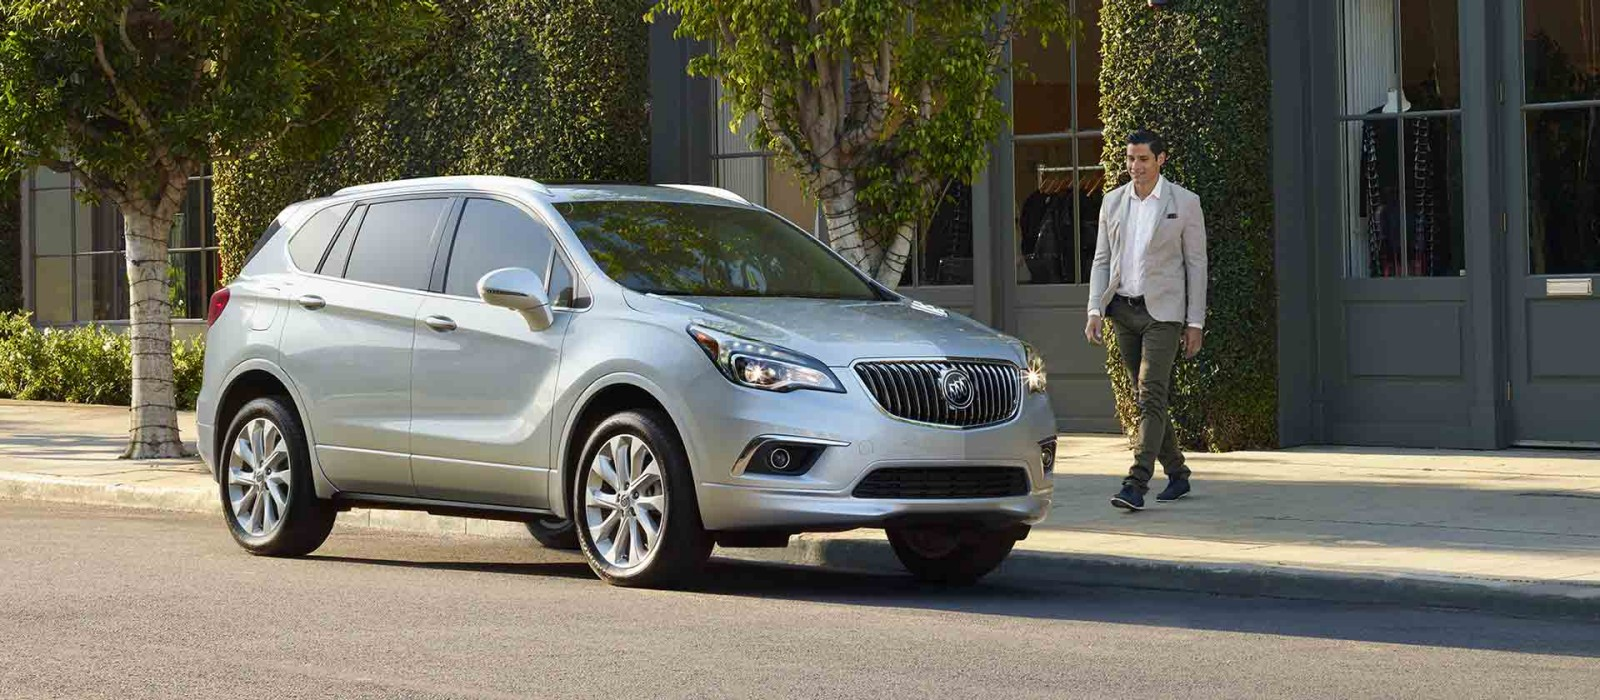 reliable ca roseville the encore models suv select has lease buick in gmc